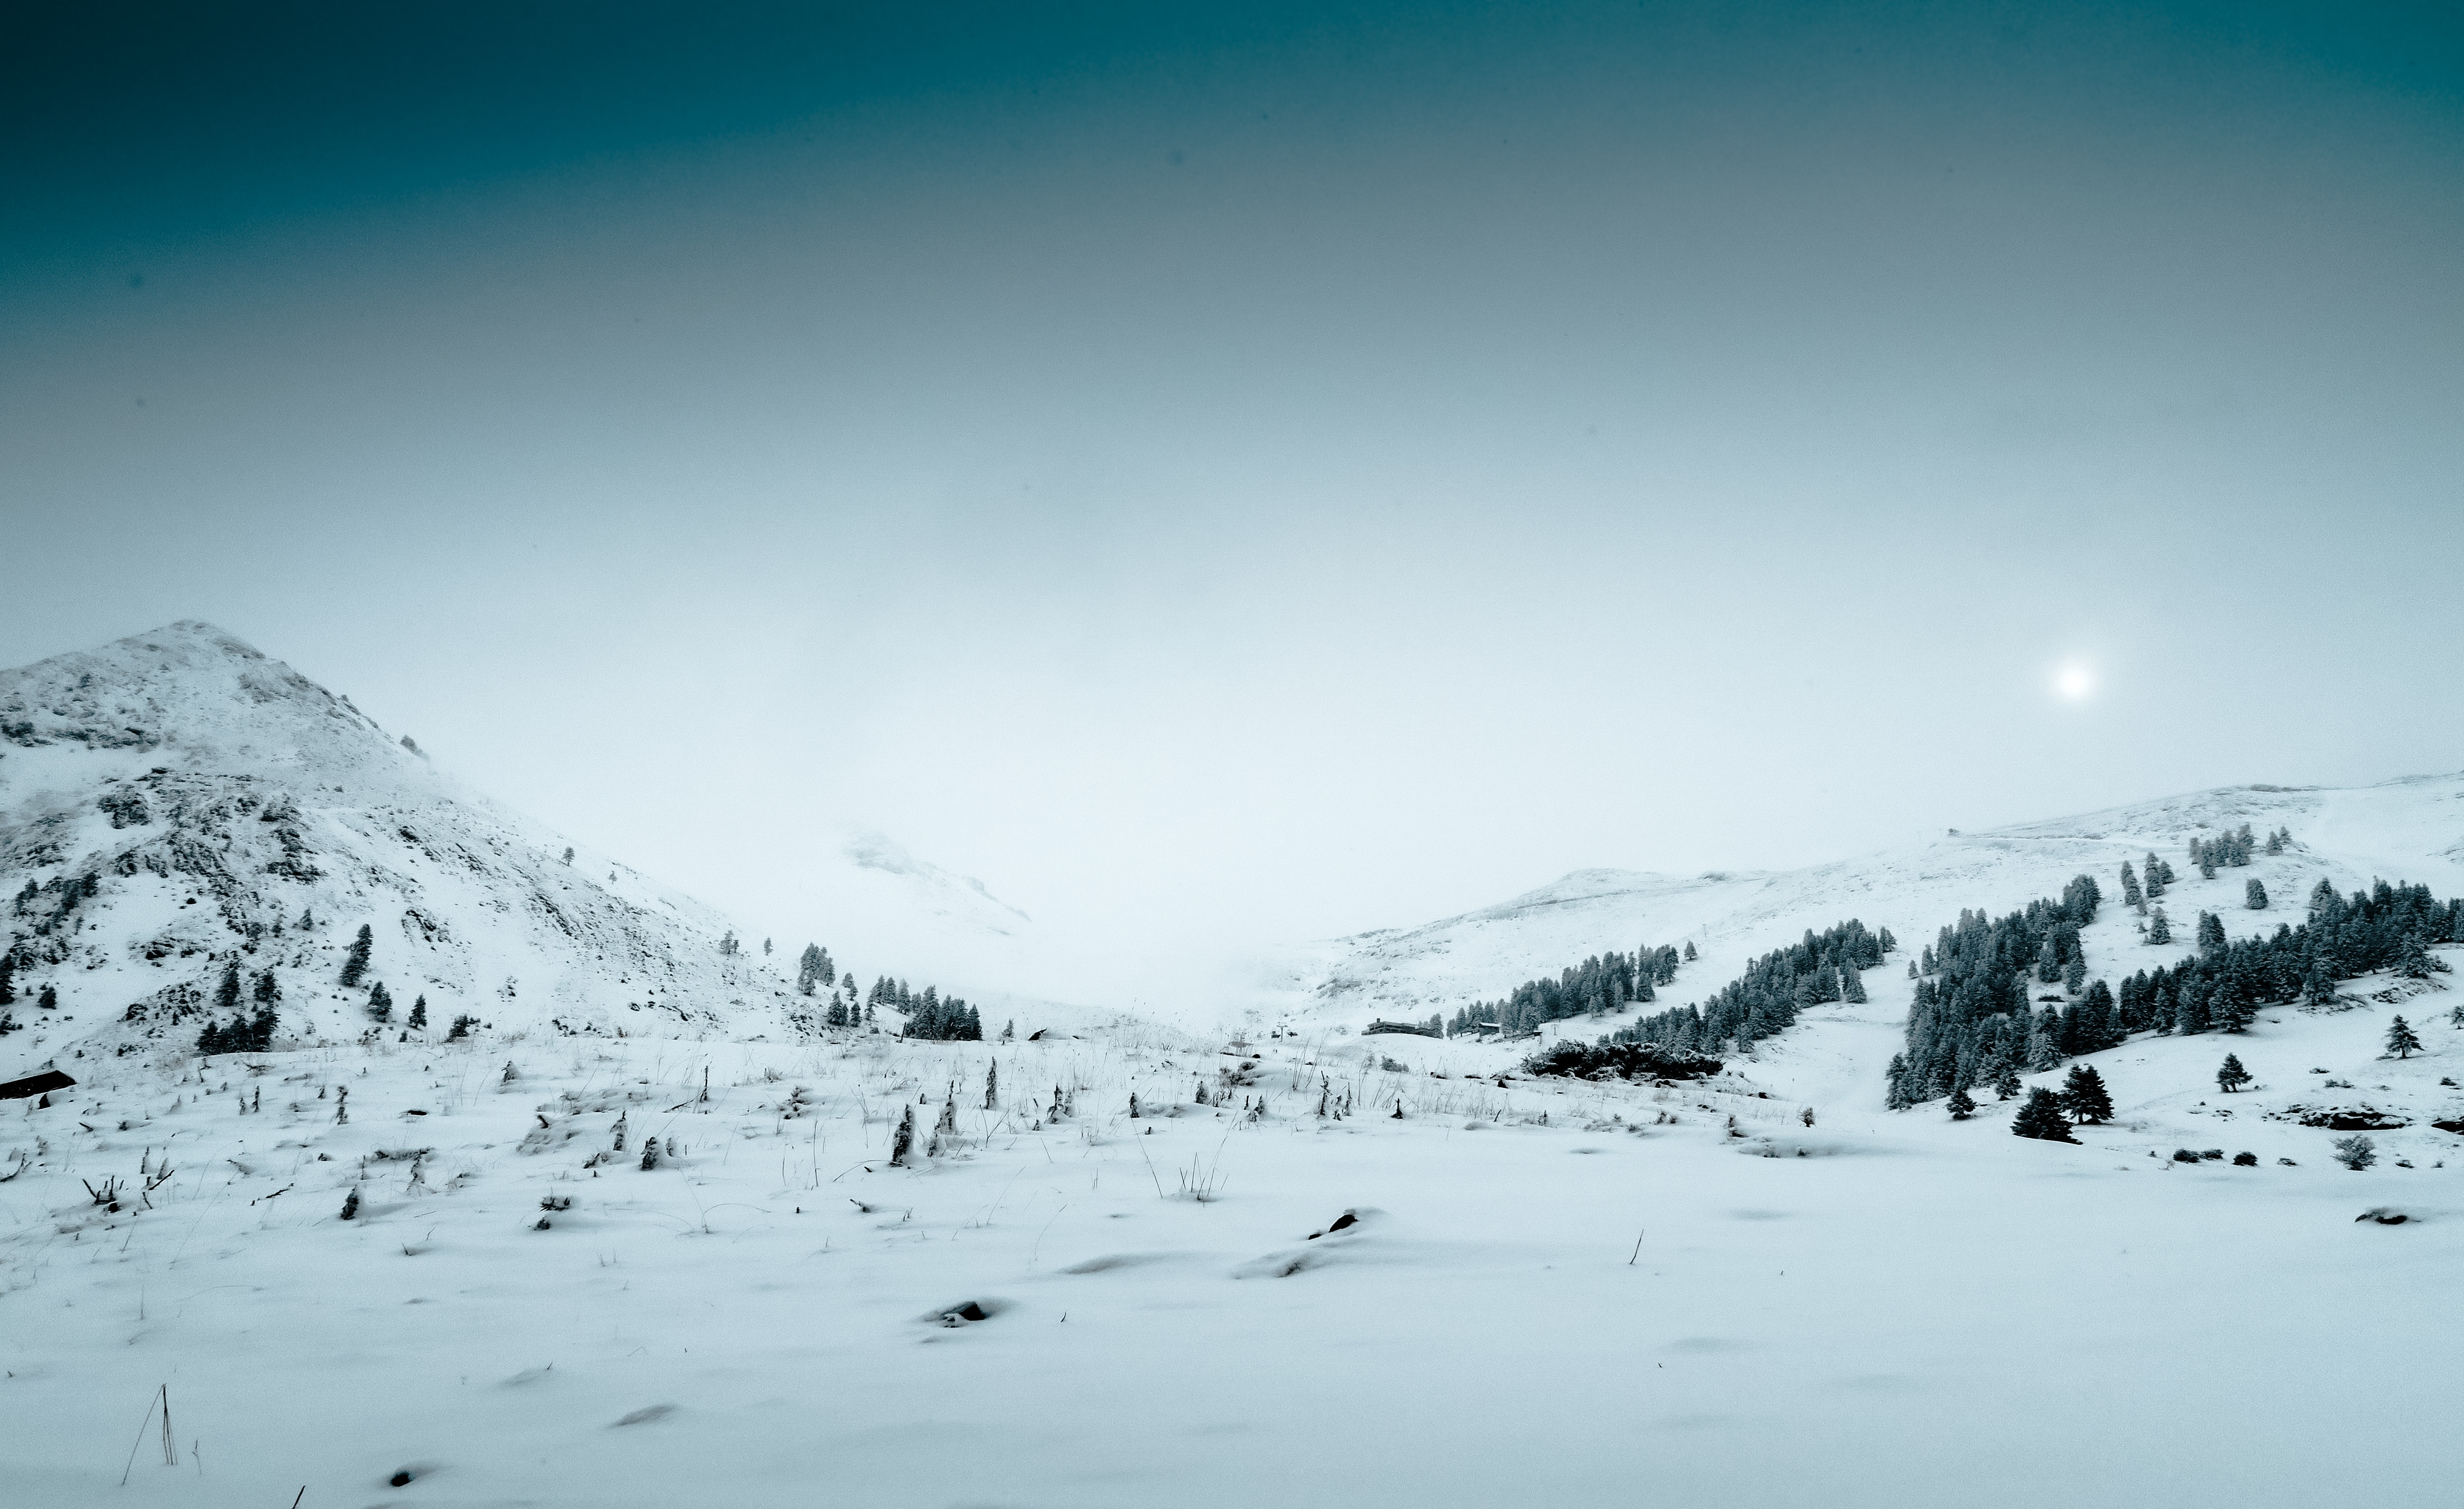 Shrubs and evergreen trees under a thick snow blanket in Kalavryta